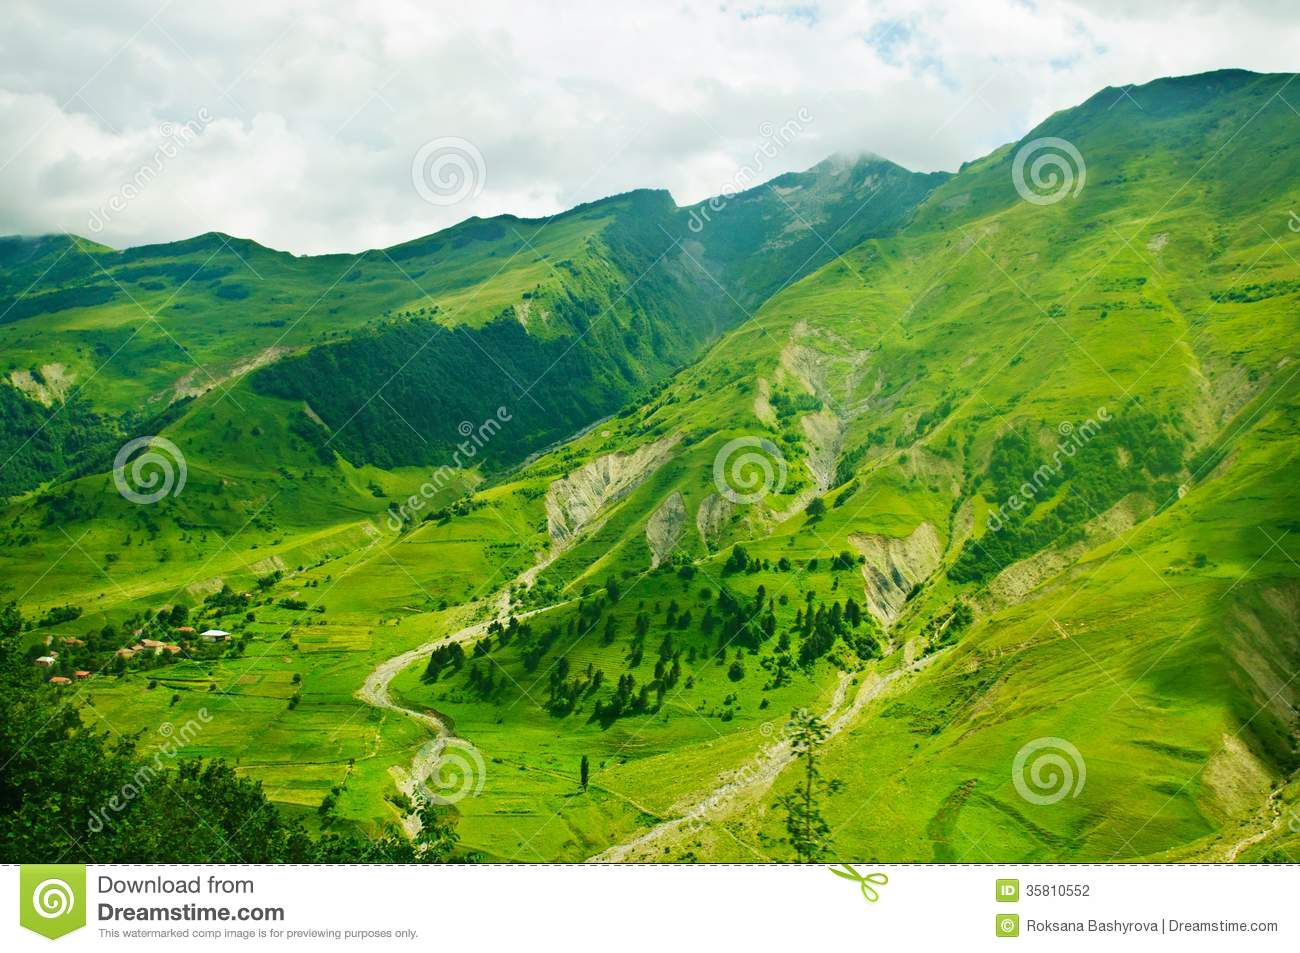 Green caucasus mountains landscape in Georgia, natural background.